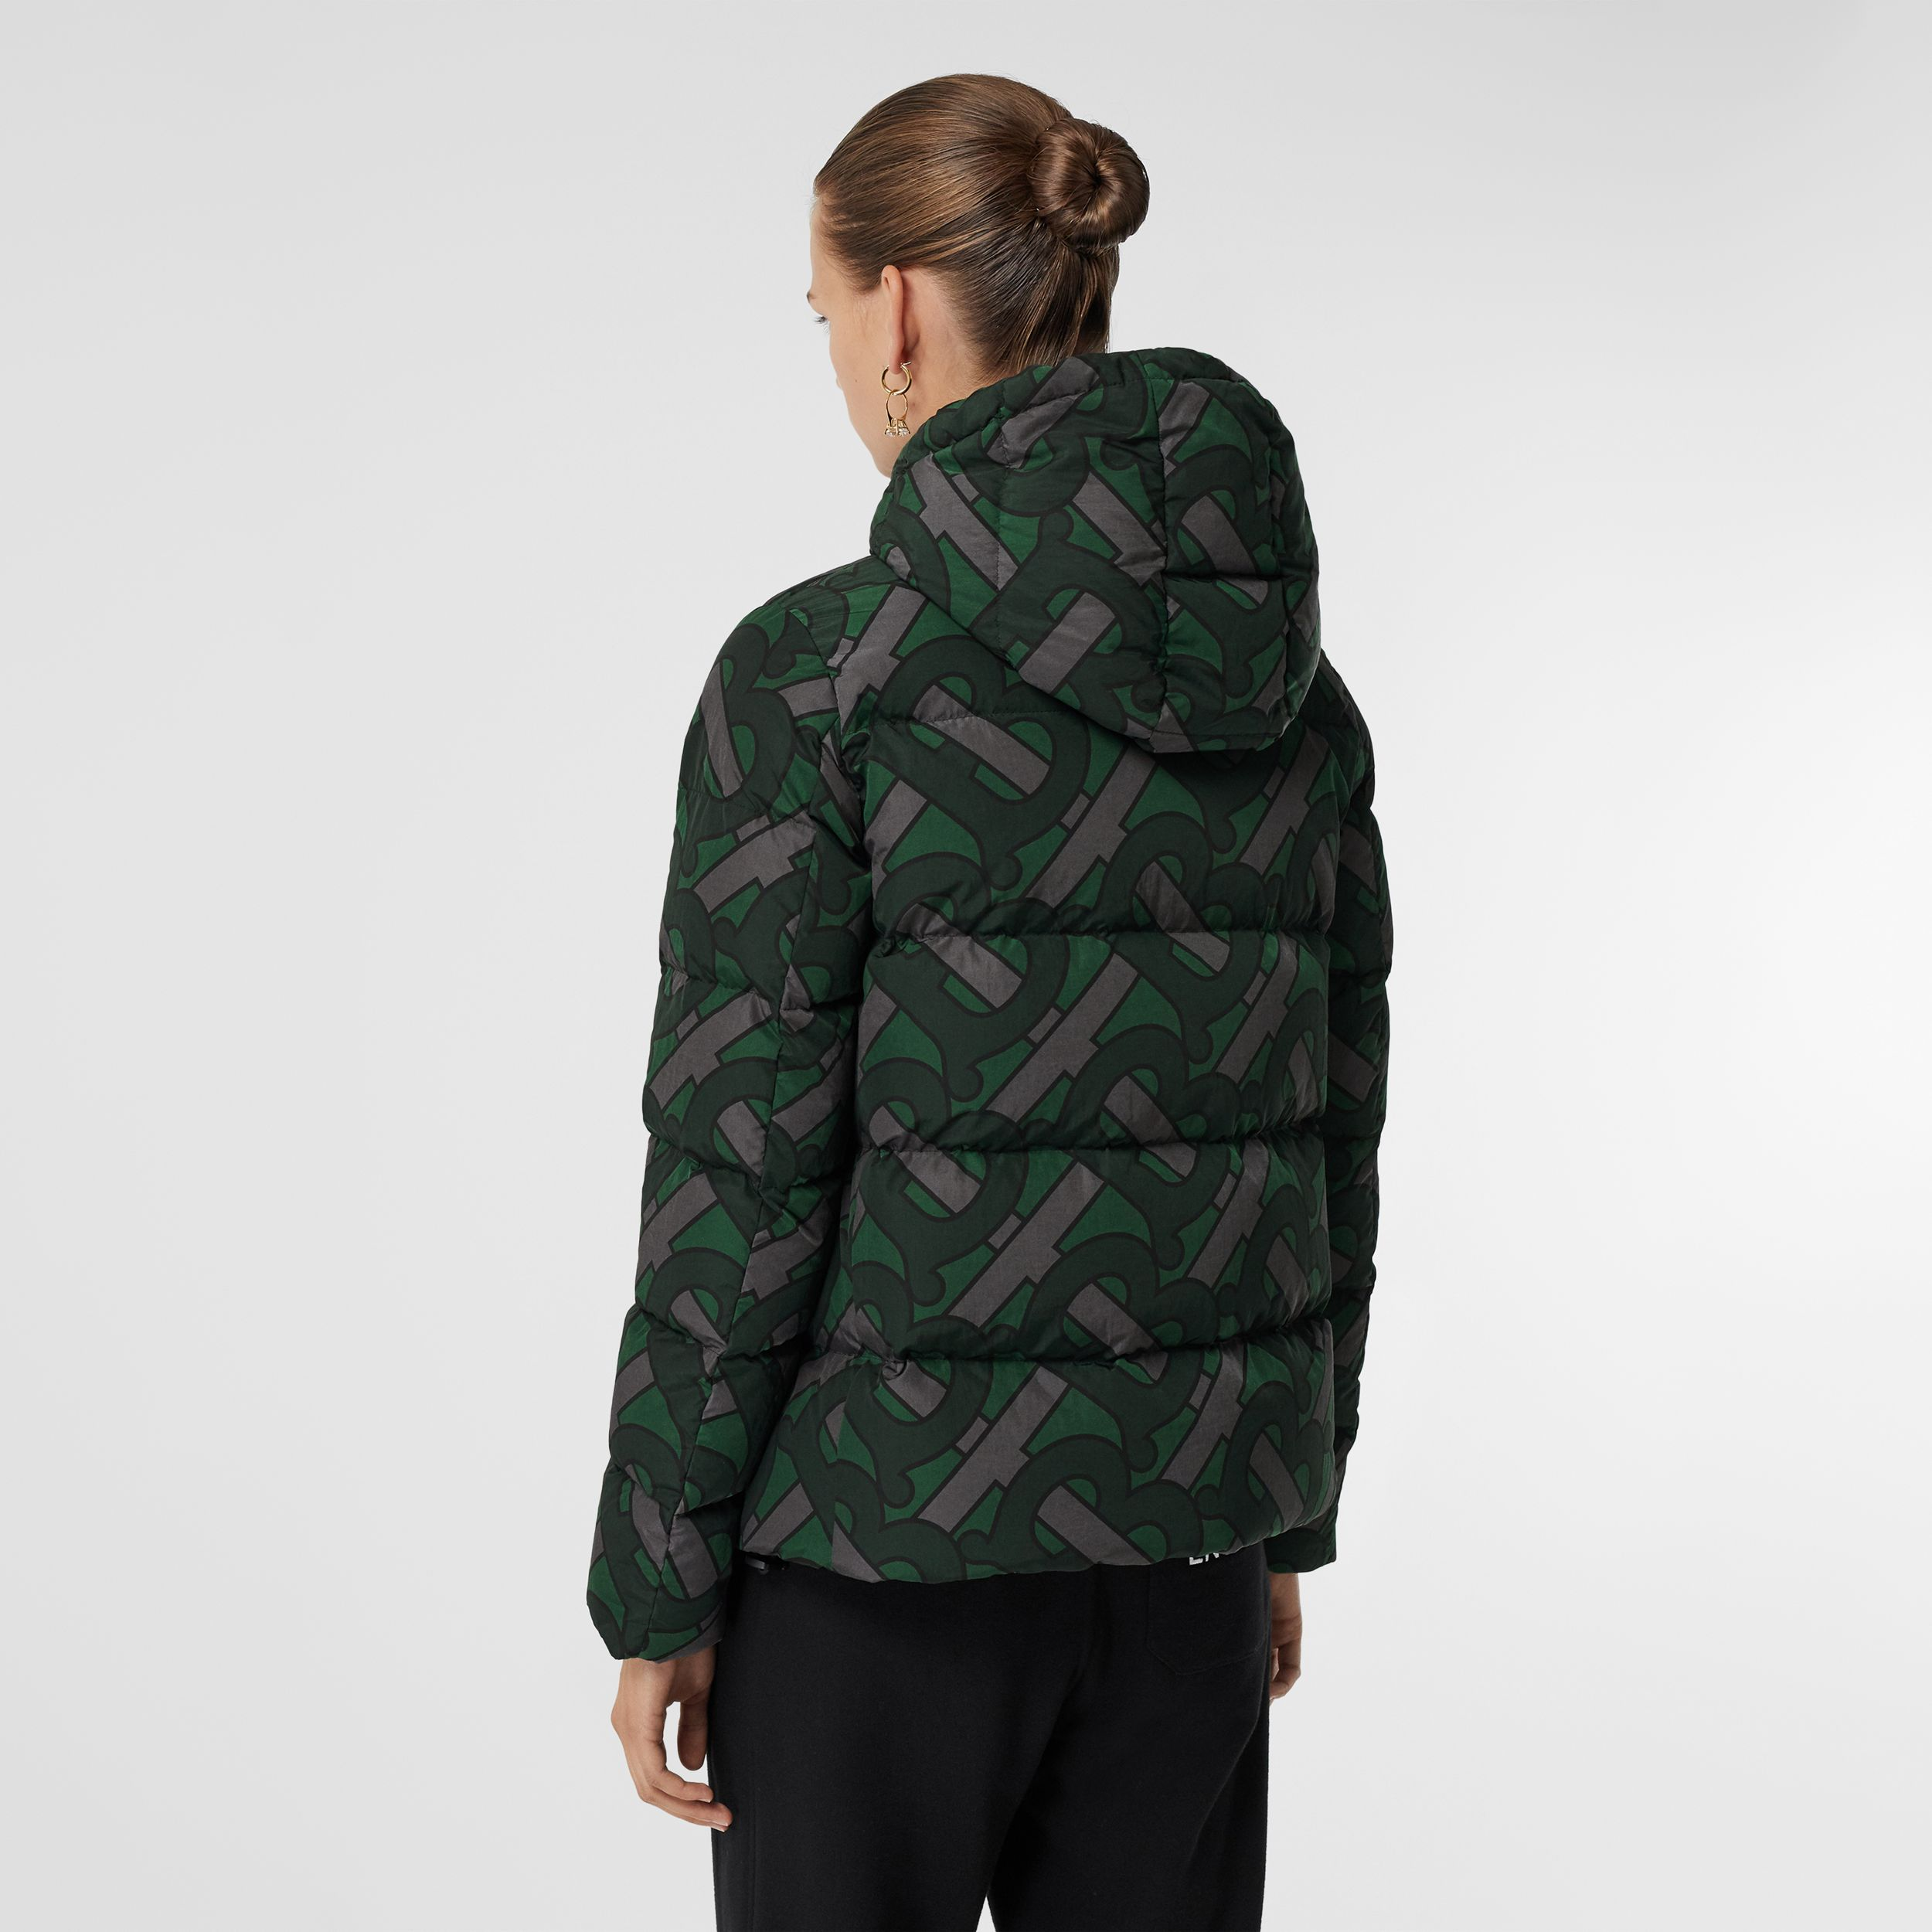 Monogram Print Hooded Puffer Jacket in Forest Green - Women | Burberry United Kingdom - 3